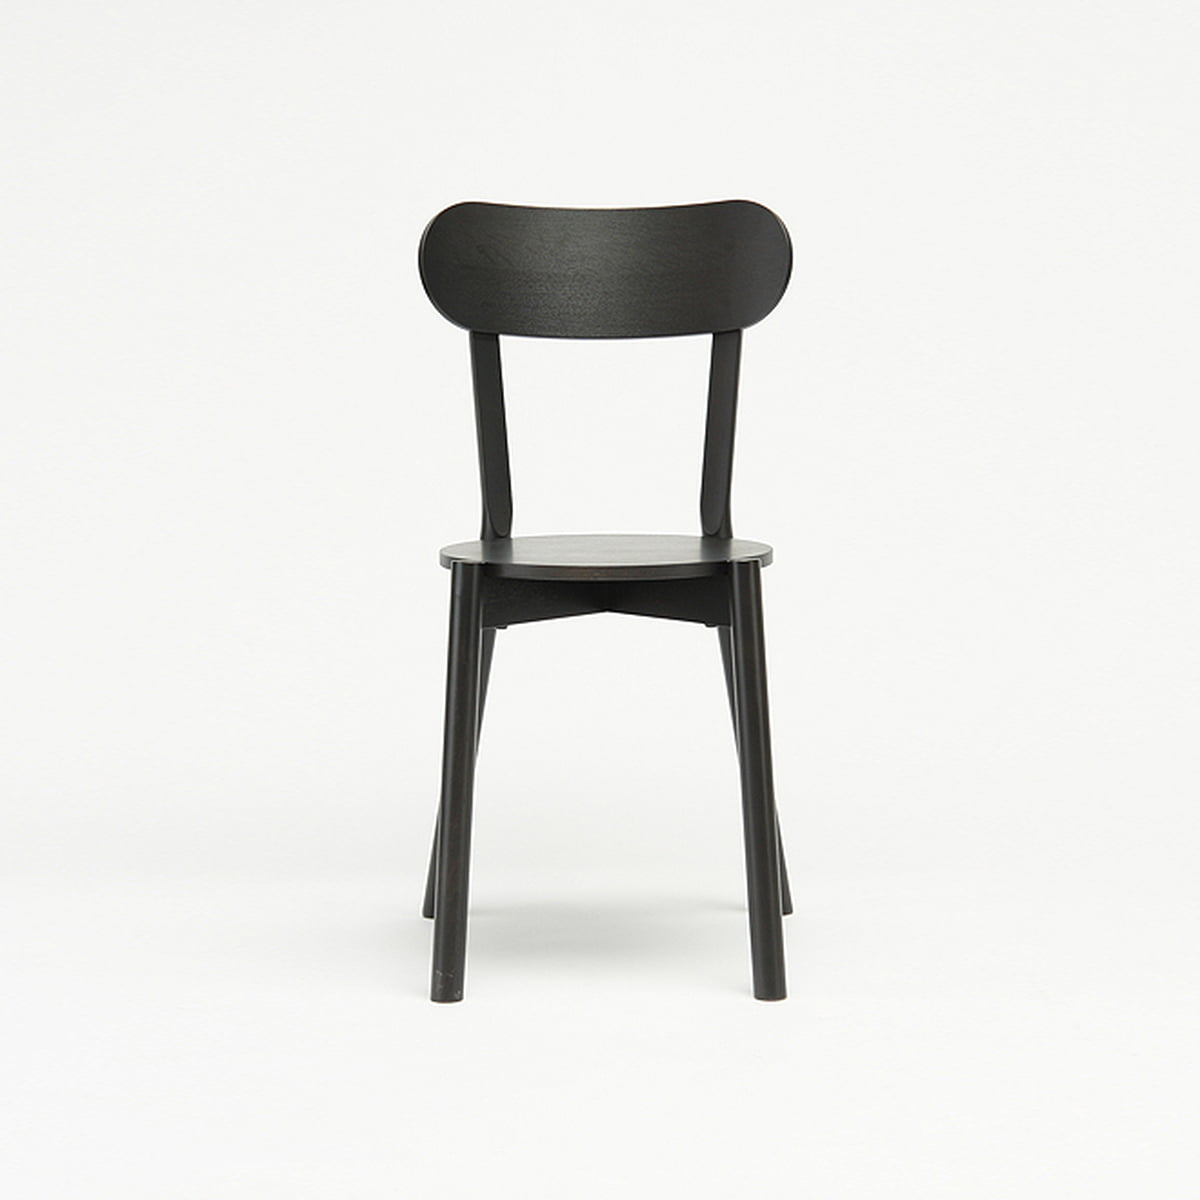 The karimoku new standard castor chair in black